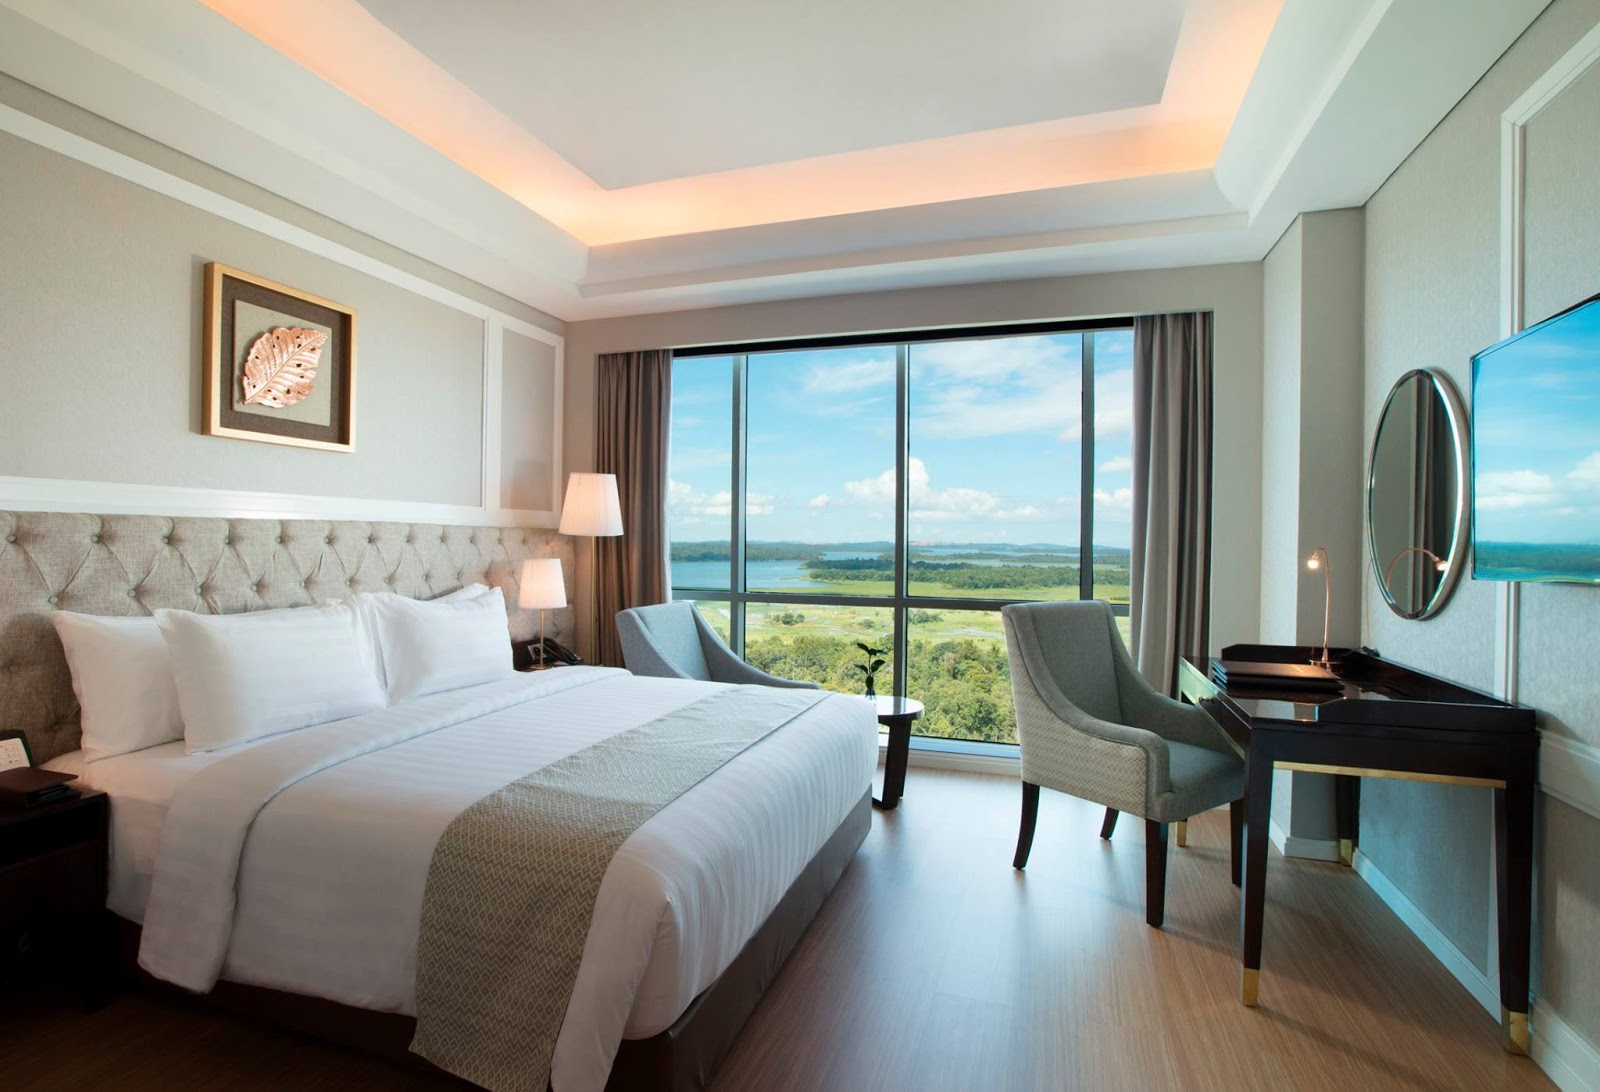 12 Best Hotels & Resorts in Batam for Your Next Weekend Getaway